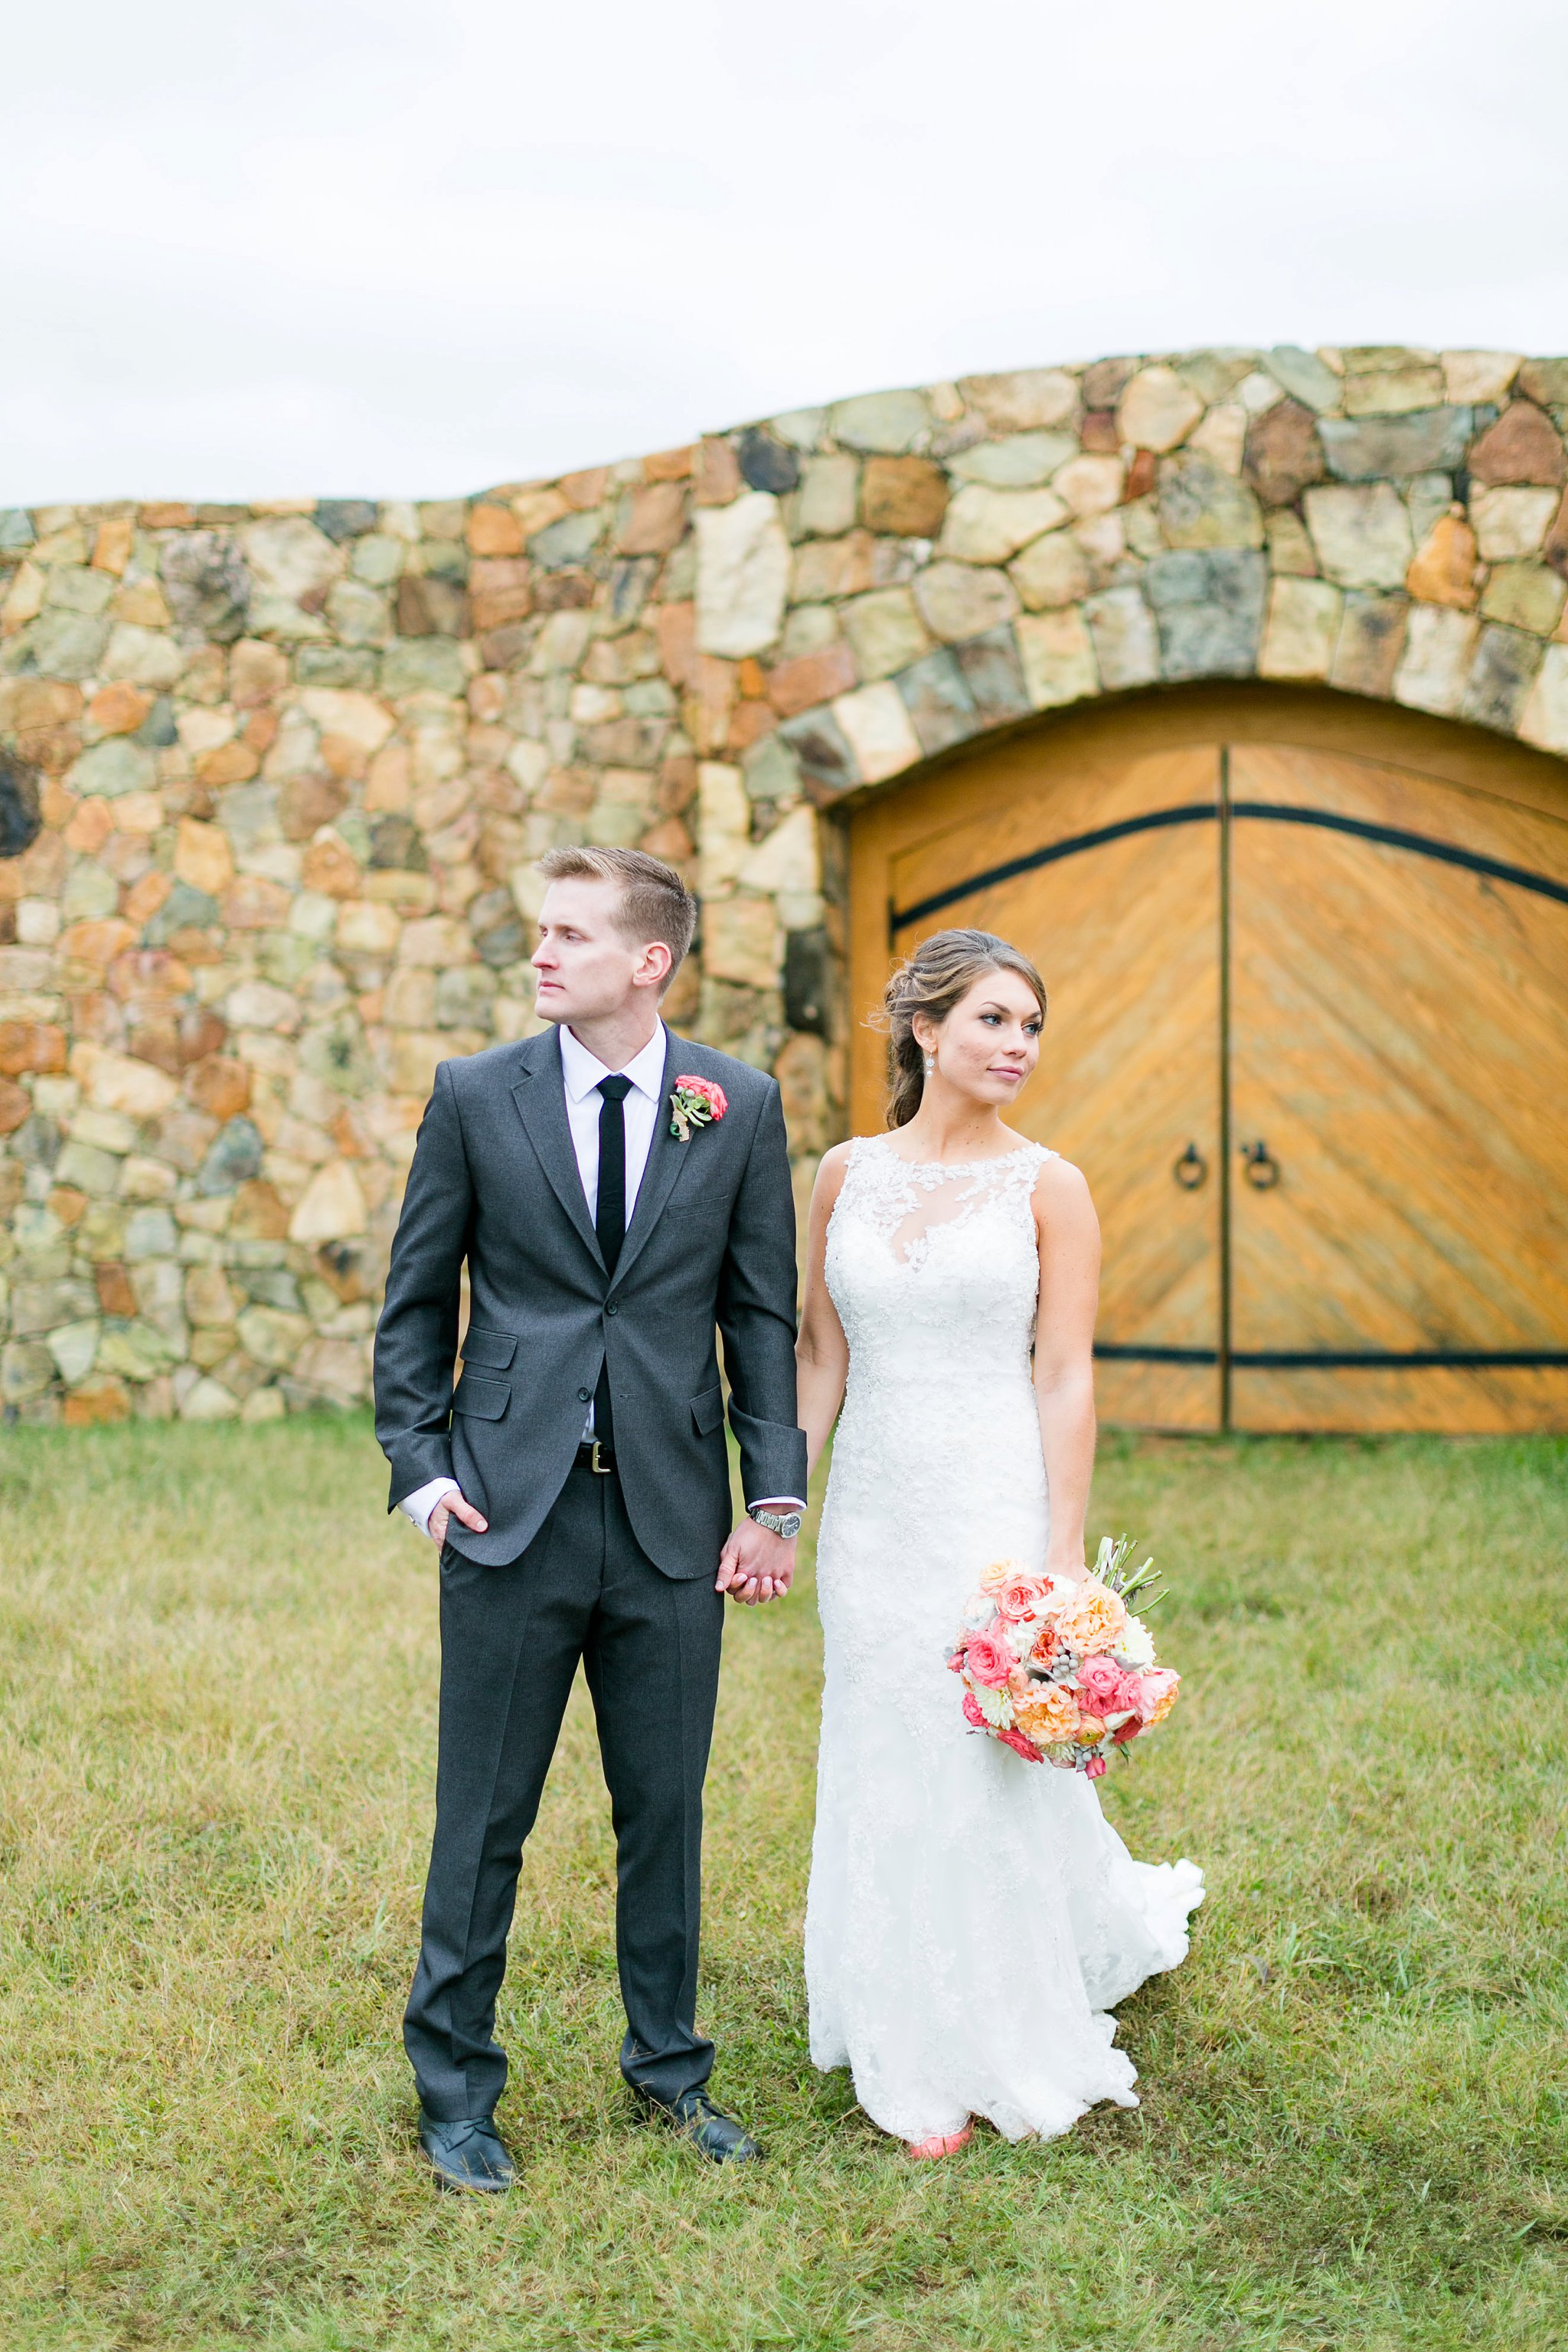 Stone Tower Winery Wedding Photos Virginia Wedding Photographer Megan Kelsey Photography Sam & Angela-261.jpg